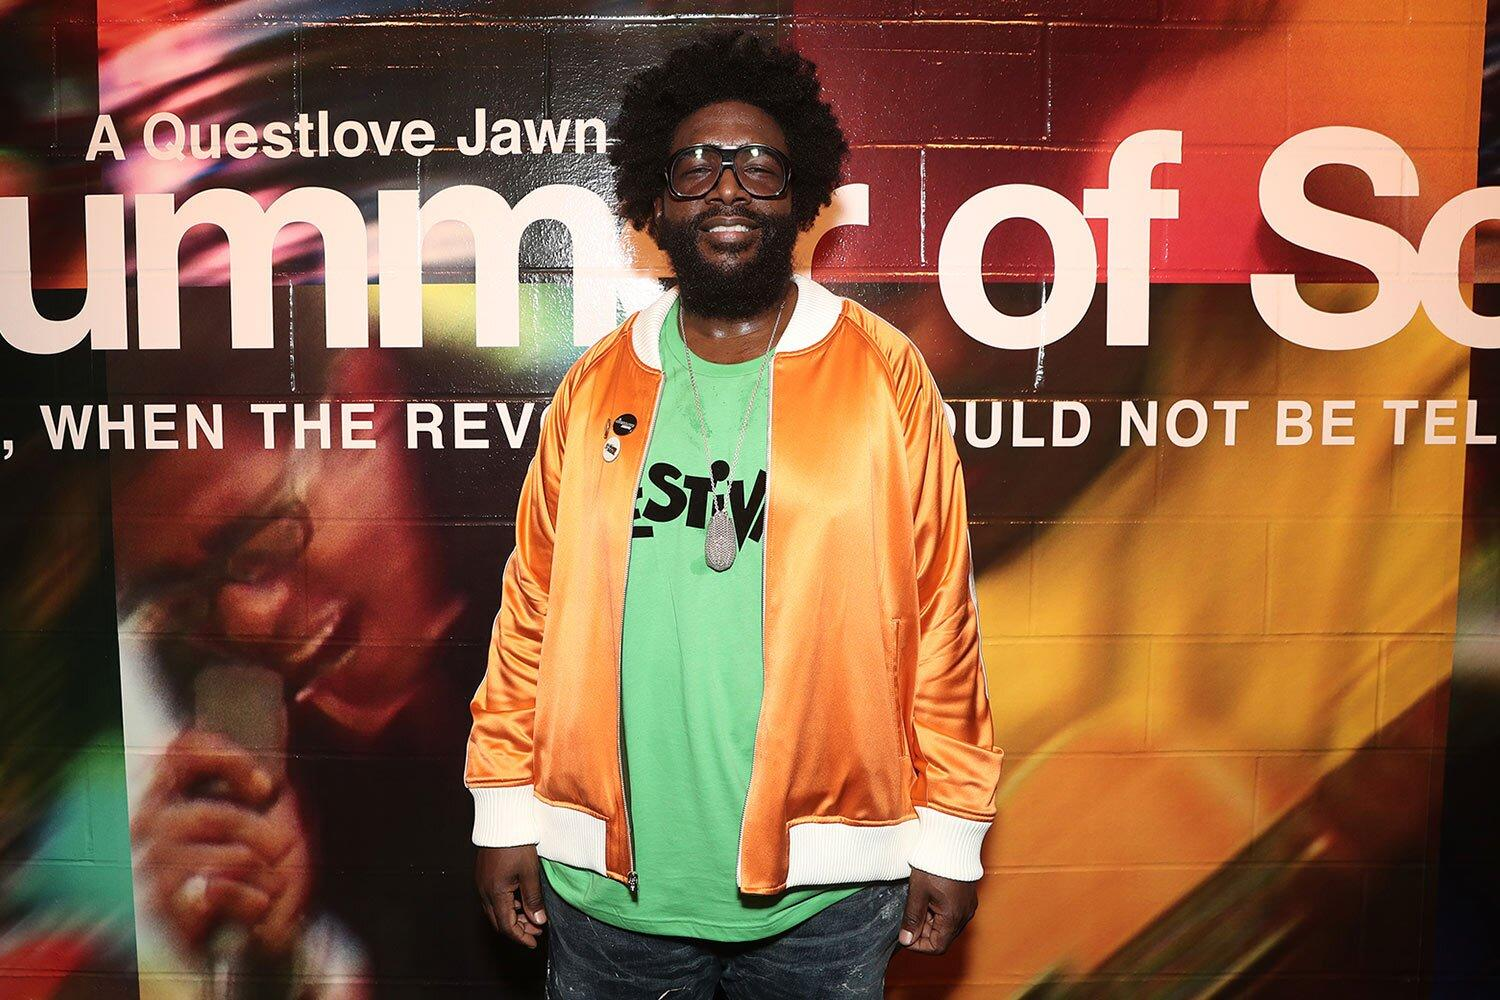 """Questlove Makes Directorial Debut With """"Summer of Soul"""" Documentary About 1969 Harlem Cultural Festival"""